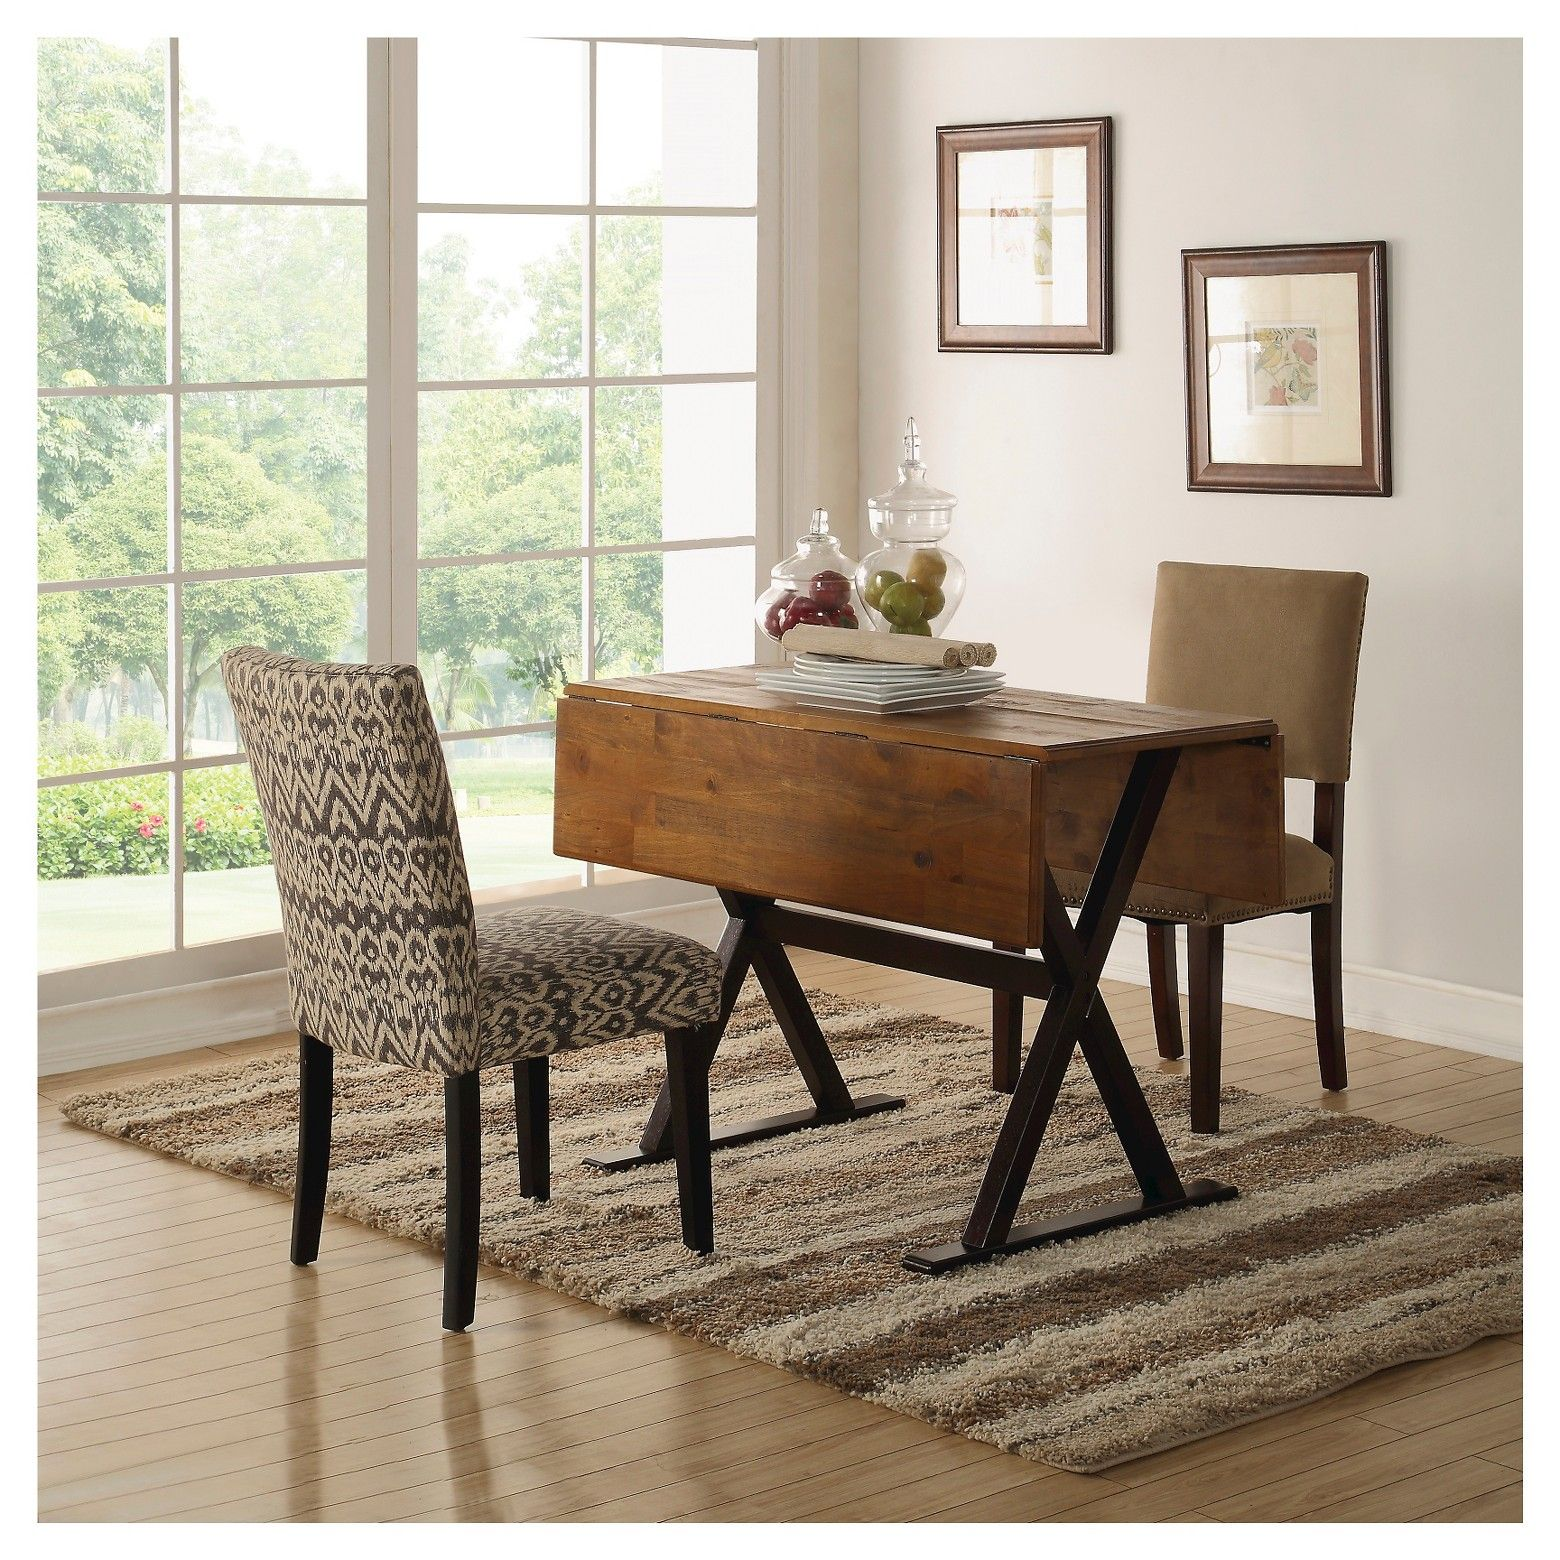 threshold 40 square drop leaf rustic dining table small spaces